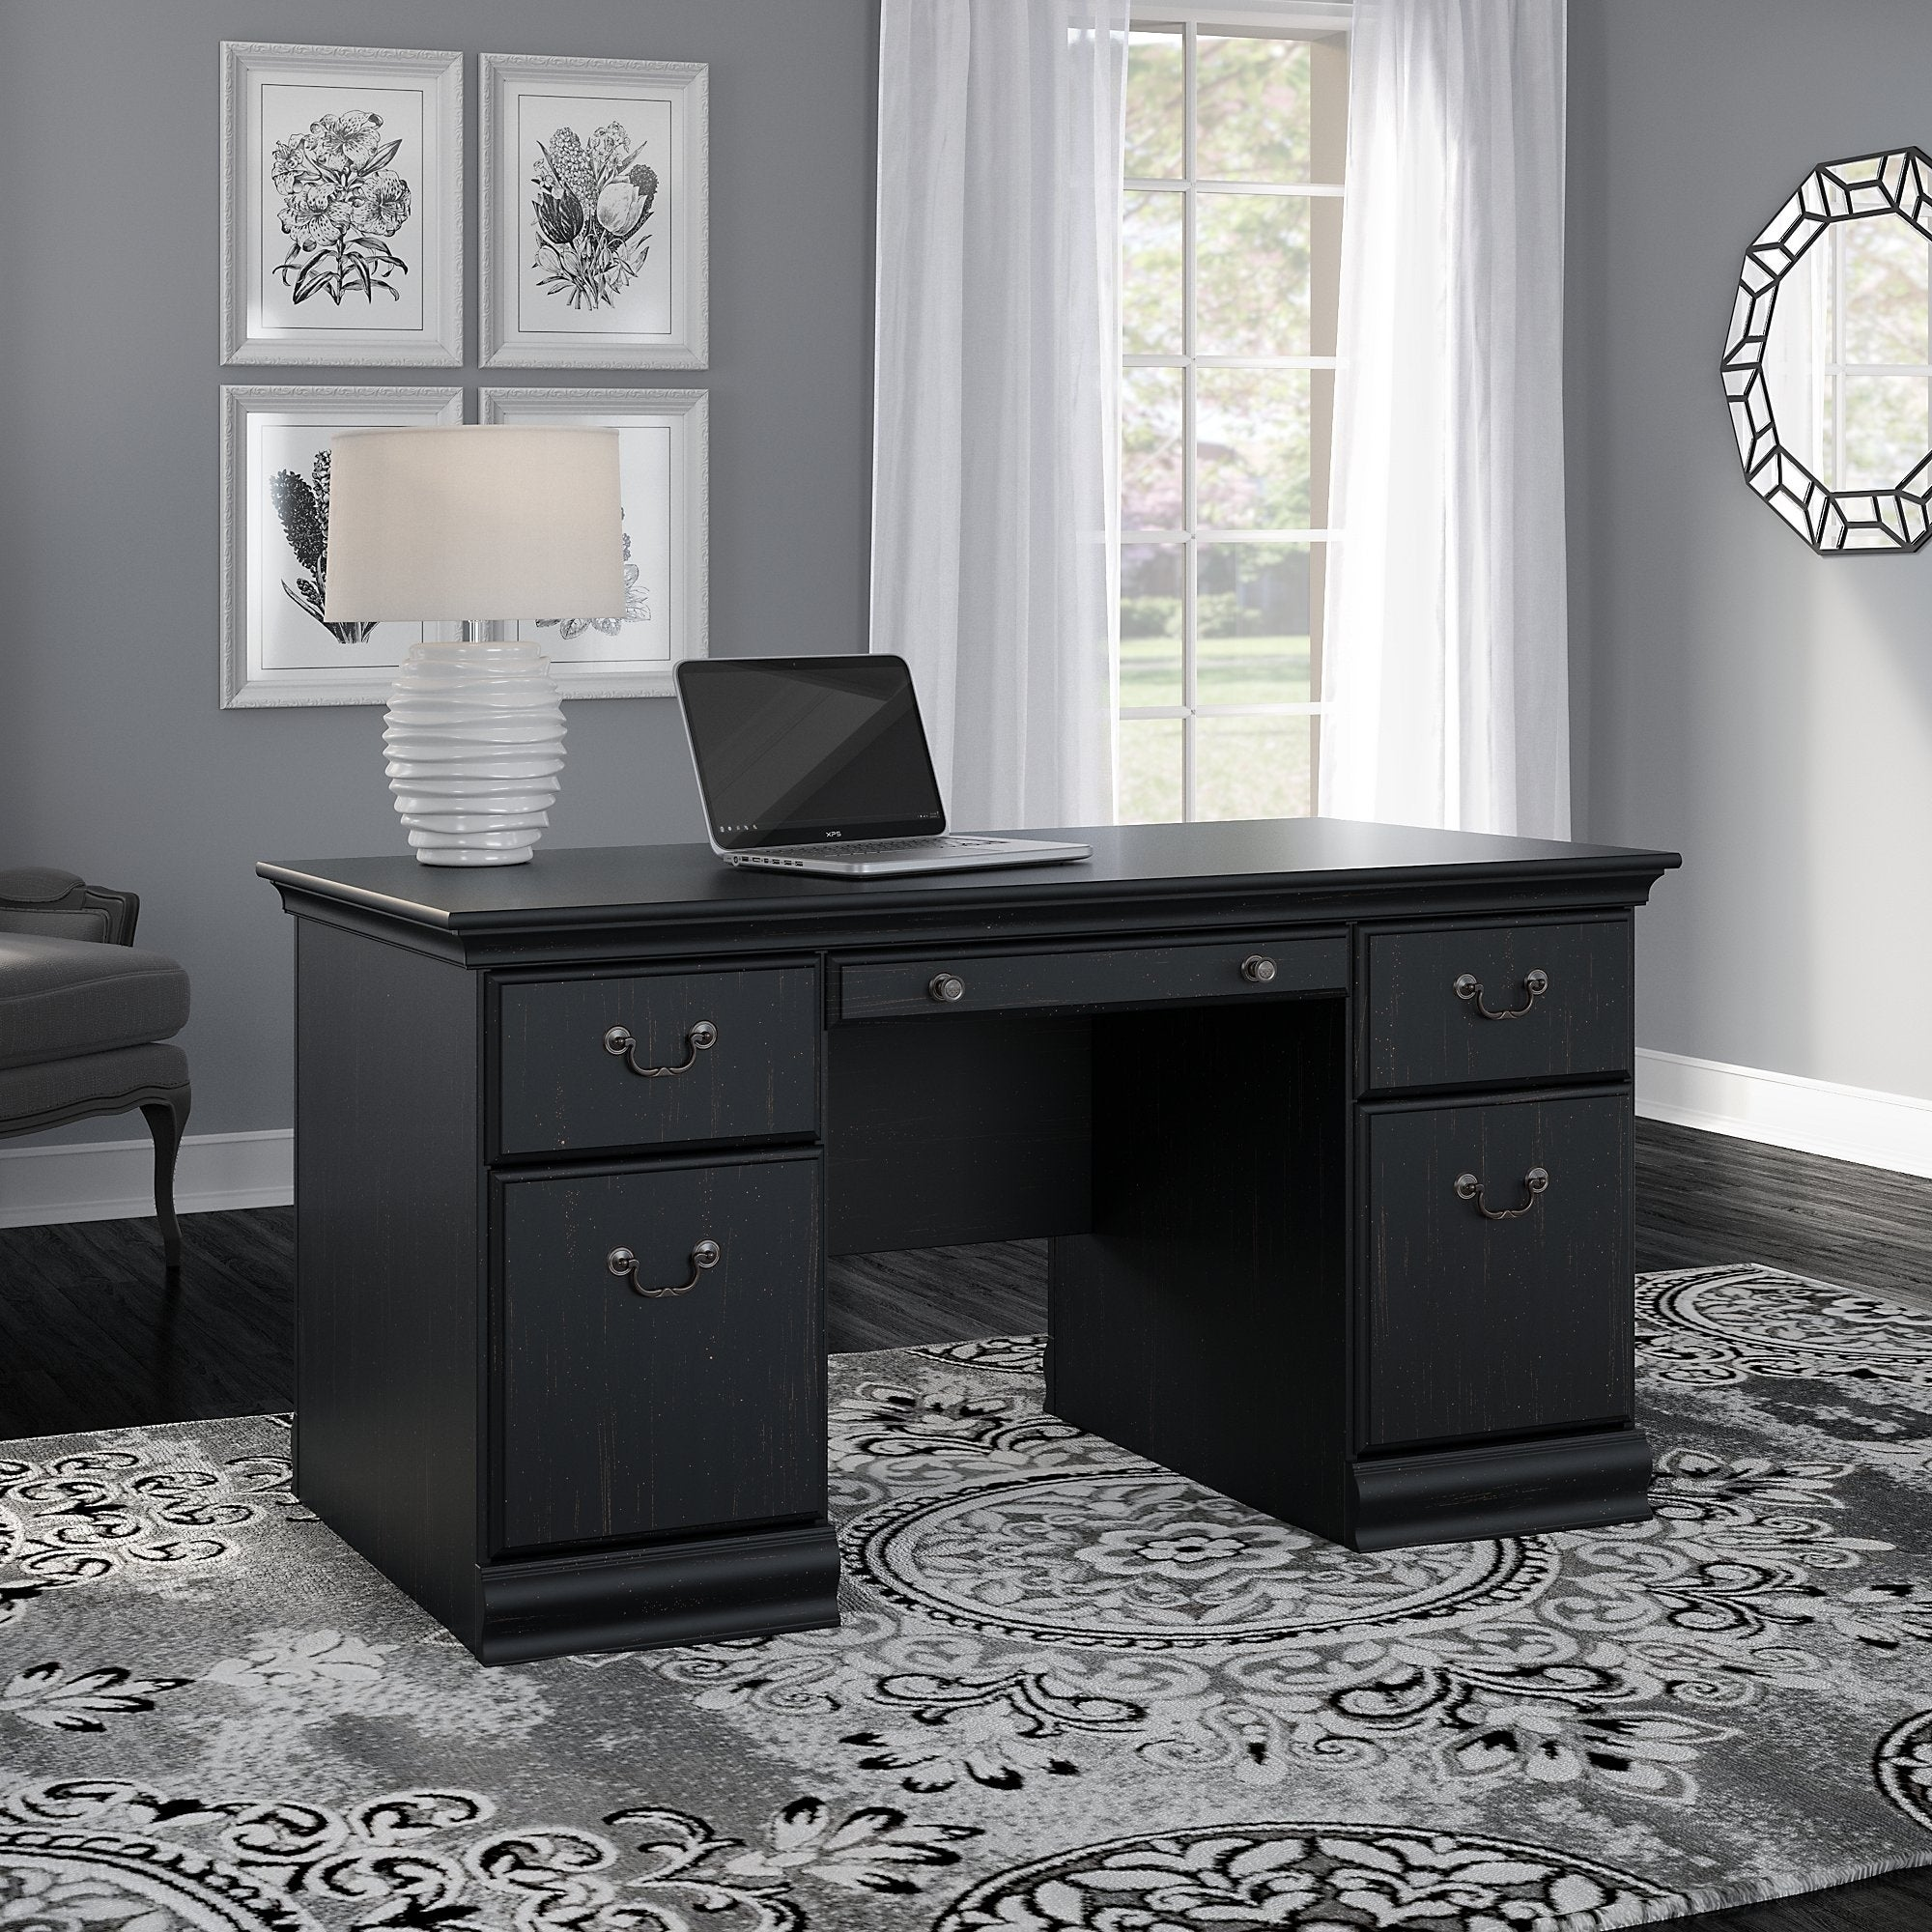 Bush furniture birmingham 60w executive desk in antique black